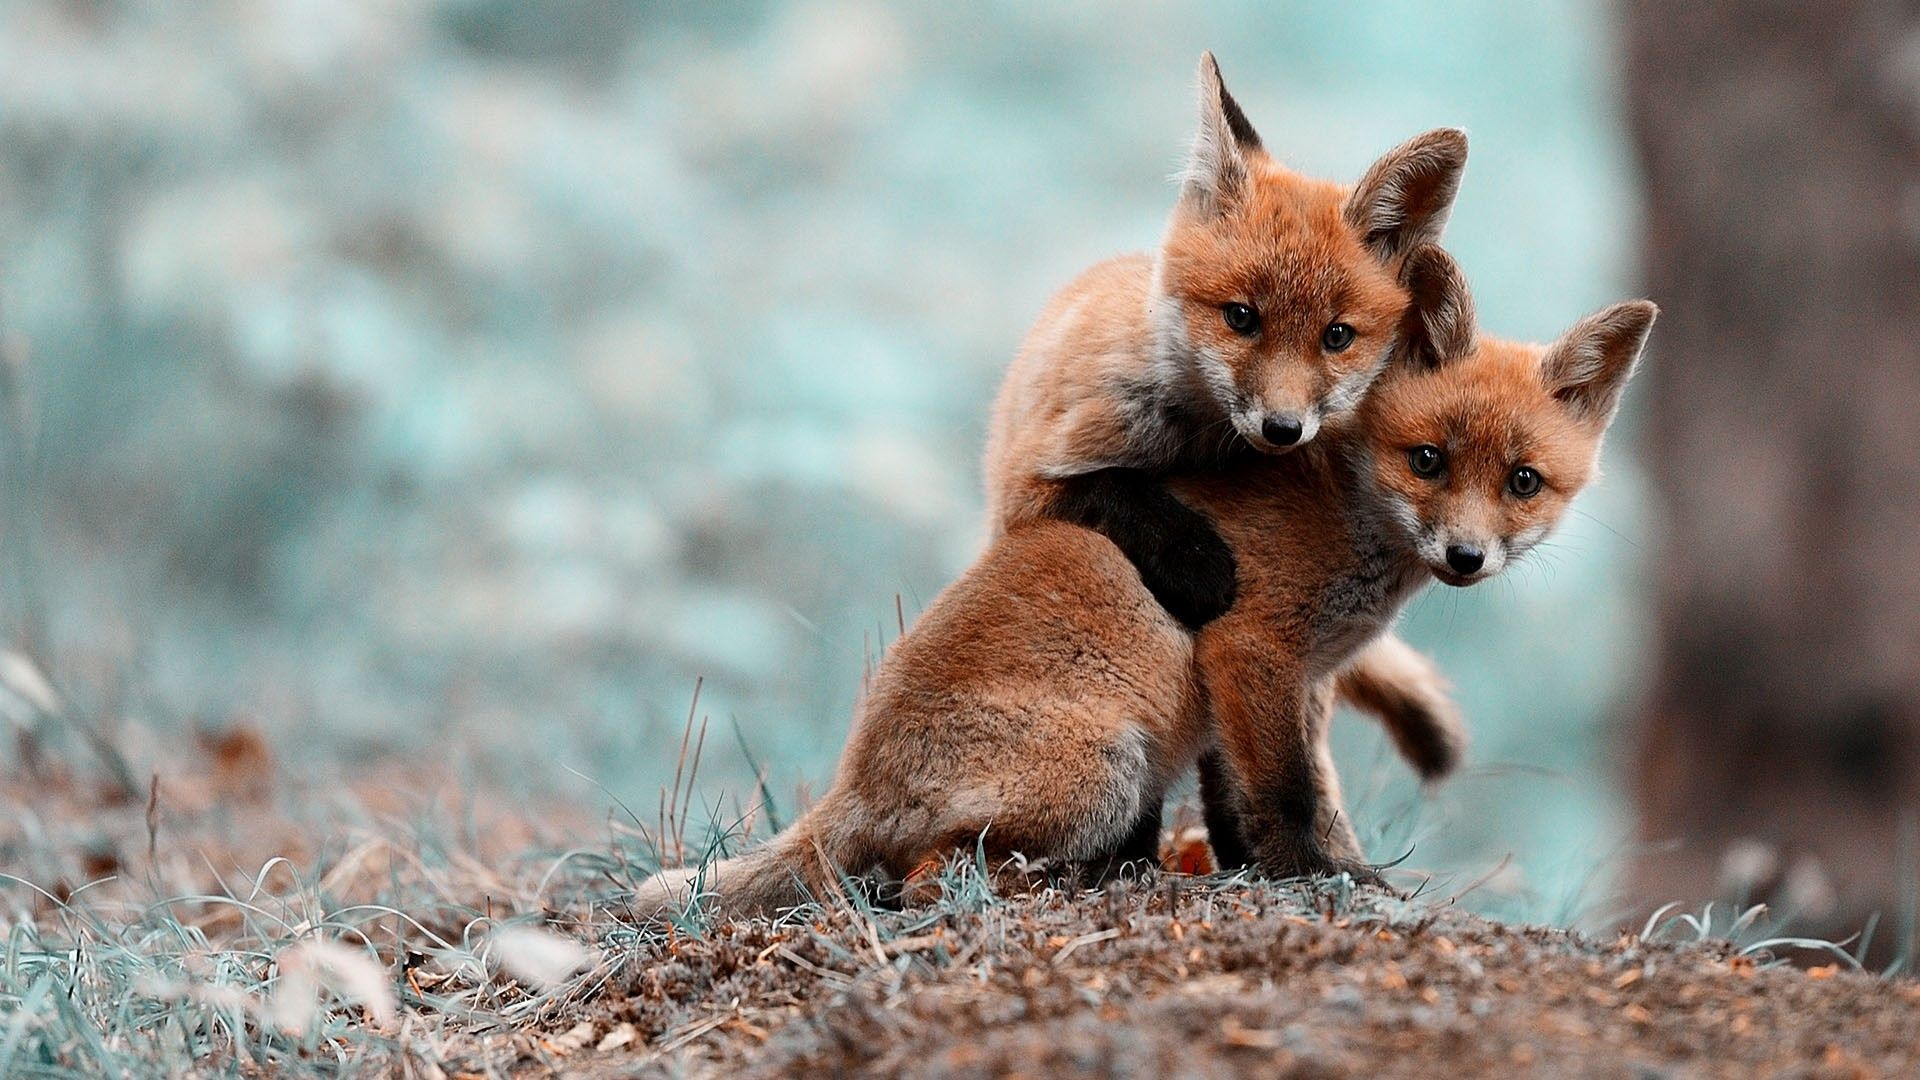 Red Fox Wallpaper 70 Images